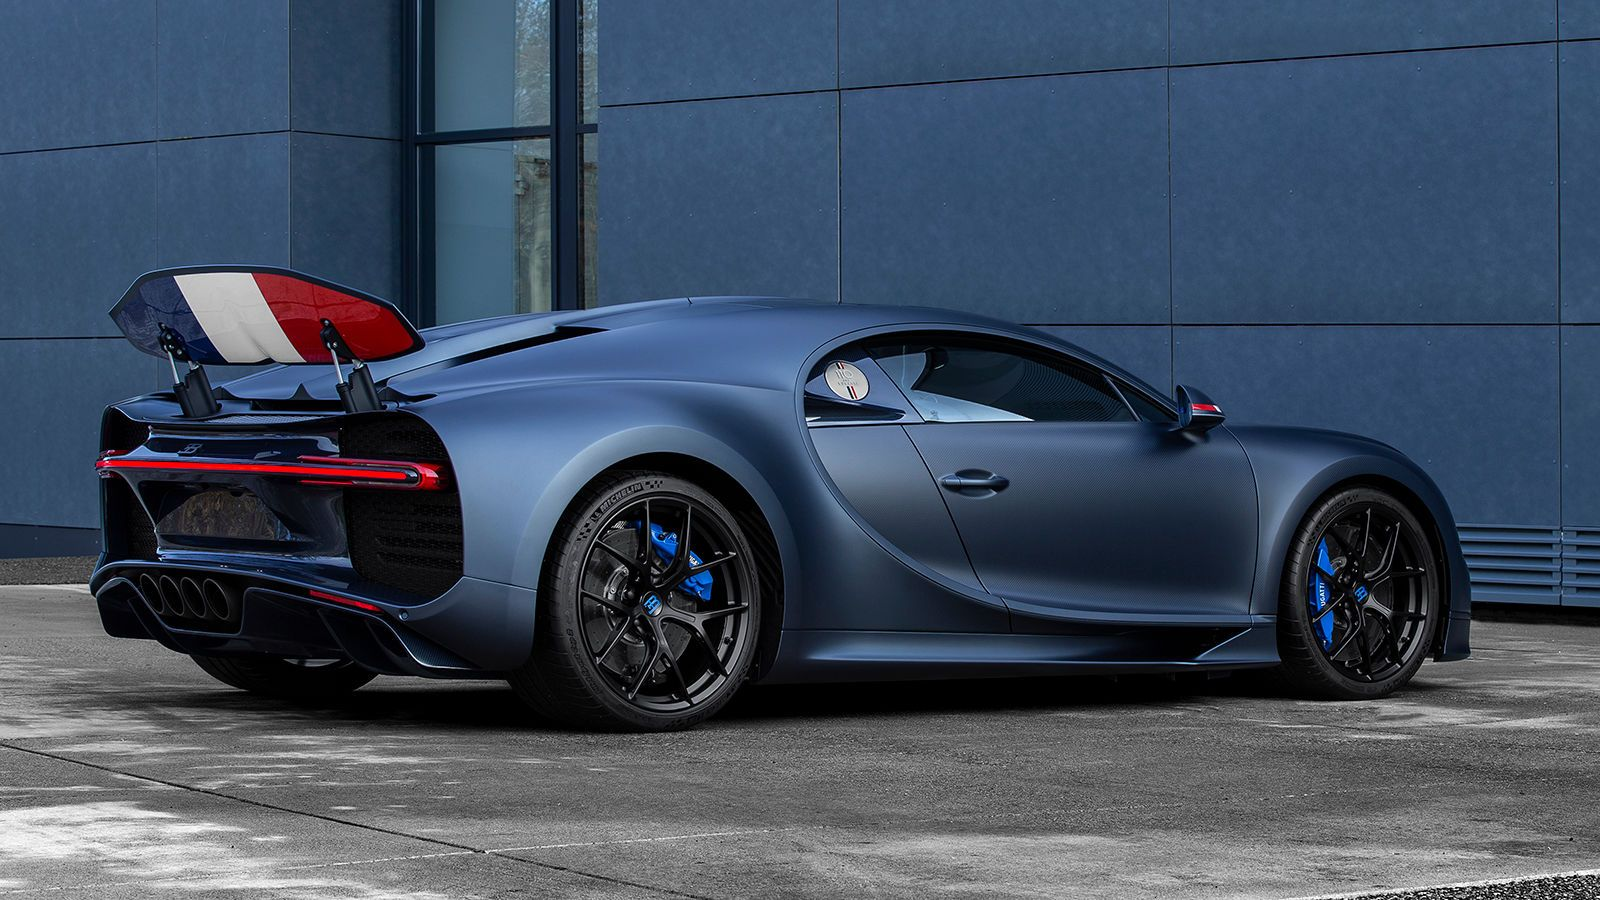 The French Pride Bugatti Chiron Is My Favorite Supercar This Week Bugatti Chiron New Bugatti Chiron Super Cars